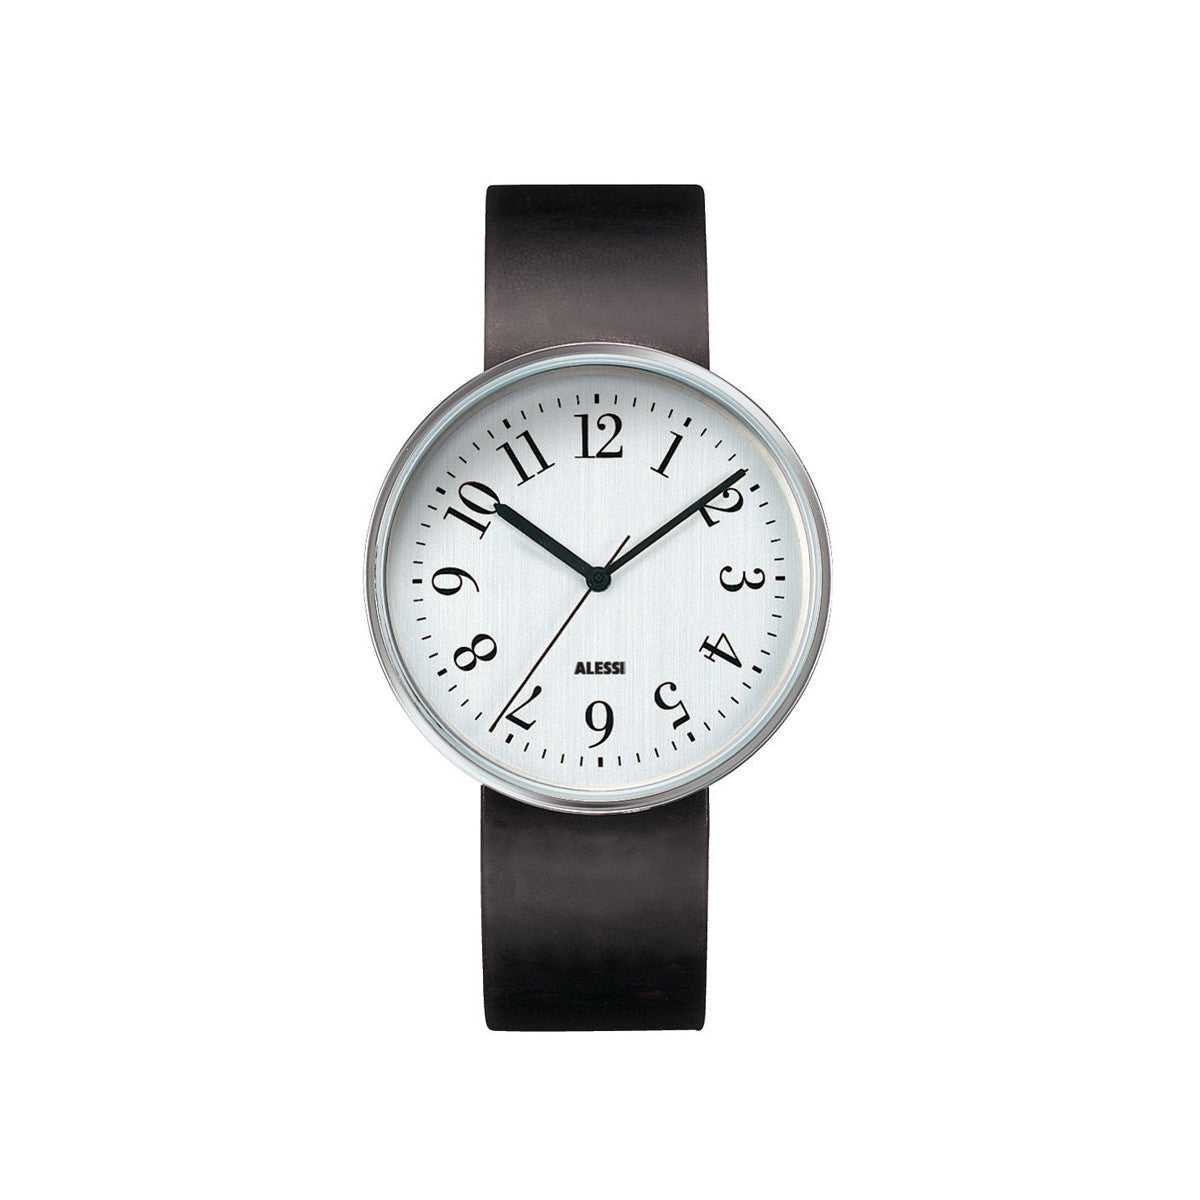 replacement strap for record watch by alessi watches  emmo home - replacement strap for record watch by alessi watches